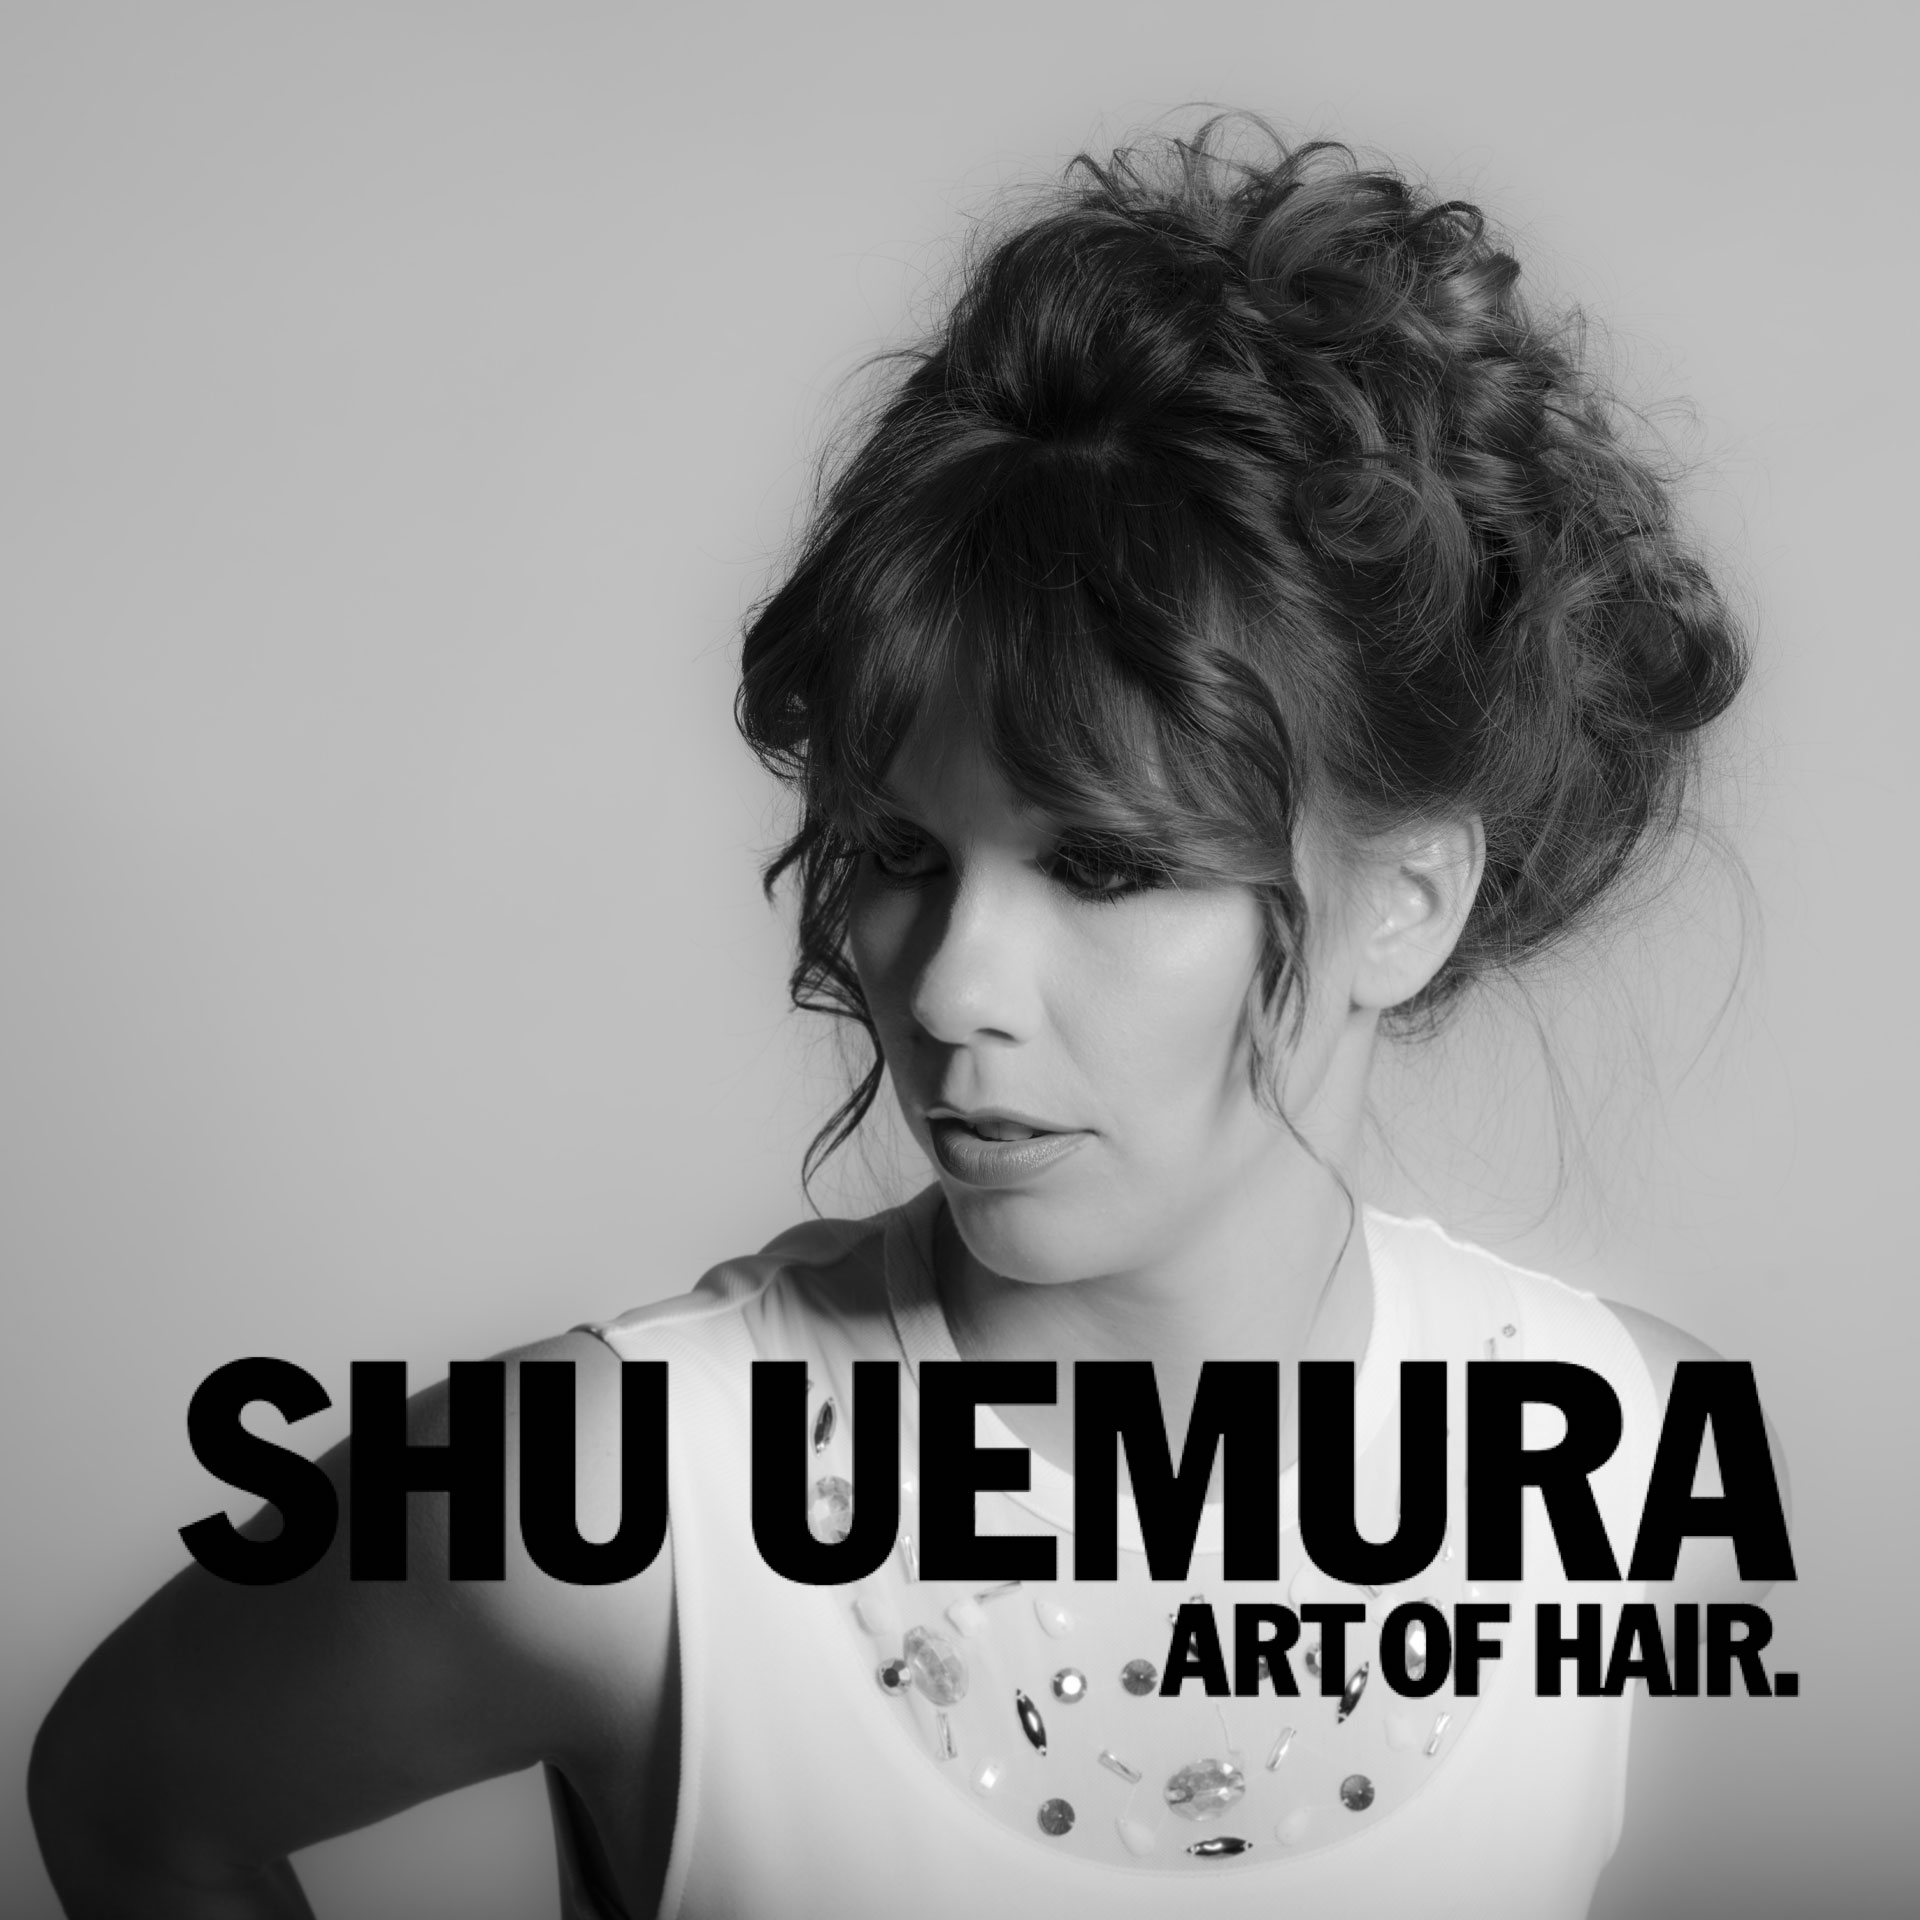 Shu uemura art of hair shop online aalam the salon for Aalam the salon reviews